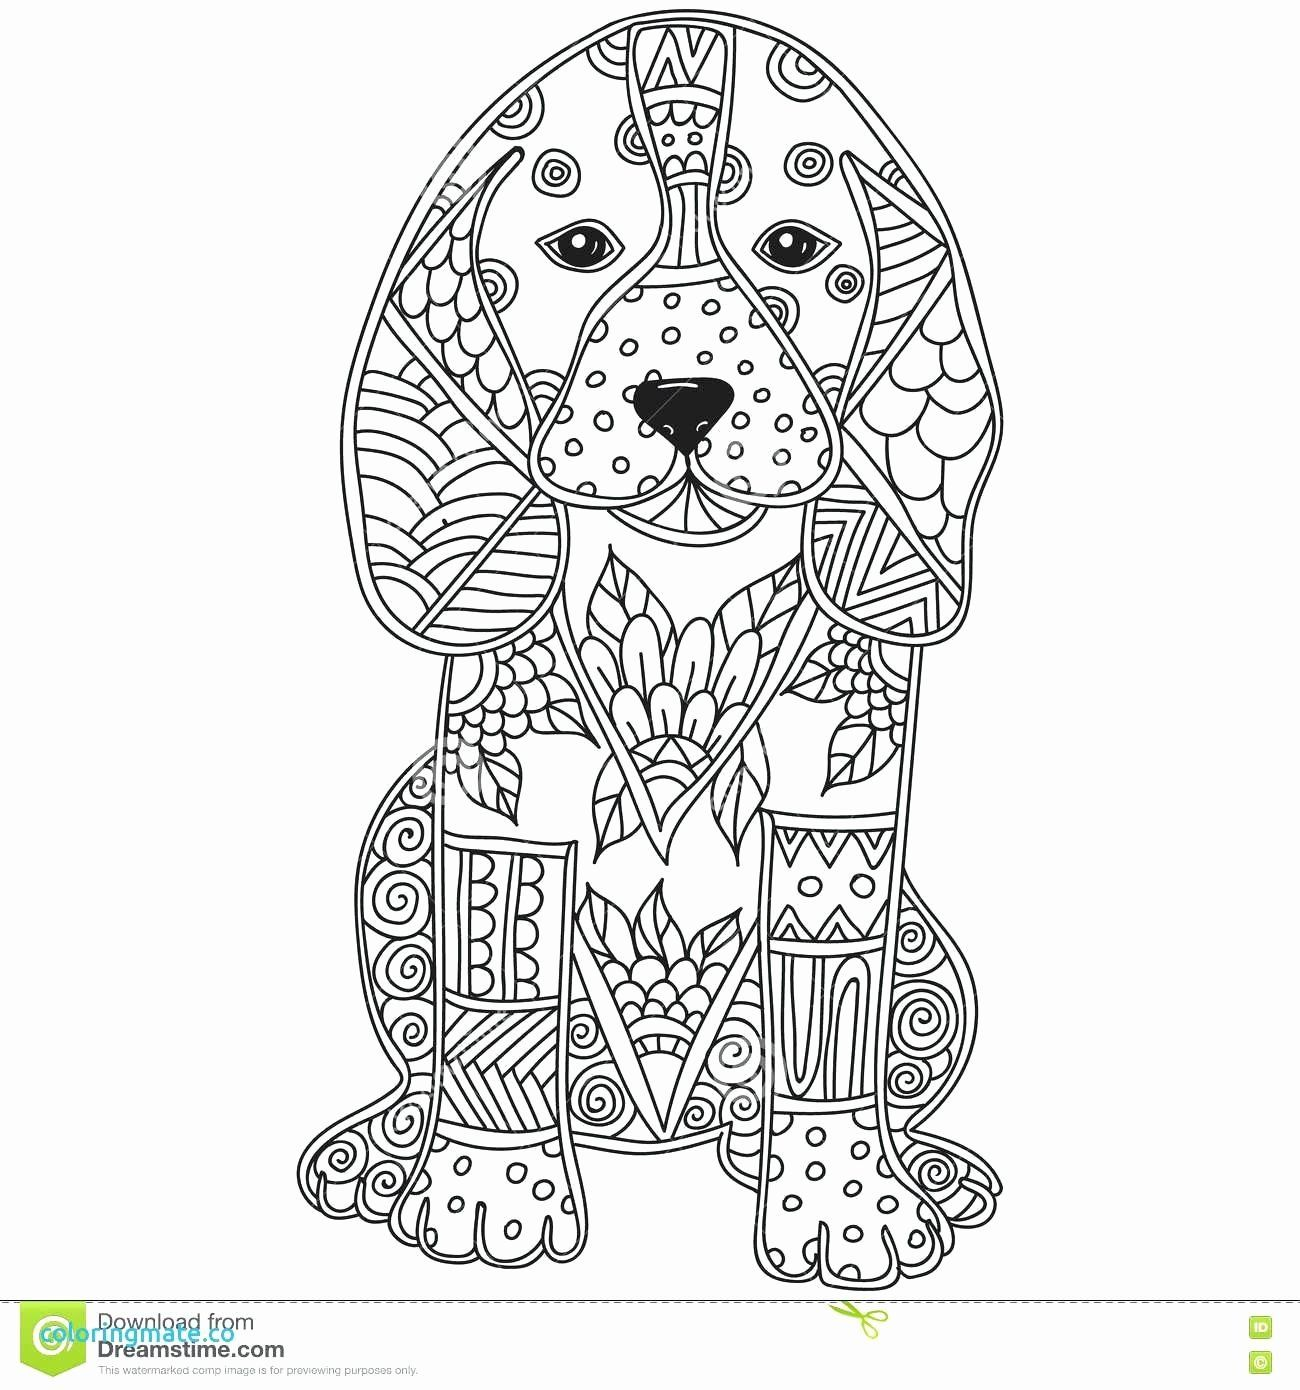 Animal Coloring Sheets Hard New Dog Coloring Pages For Adults Theroarub Dog Coloring Page Animal Coloring Pages Dog Coloring Book